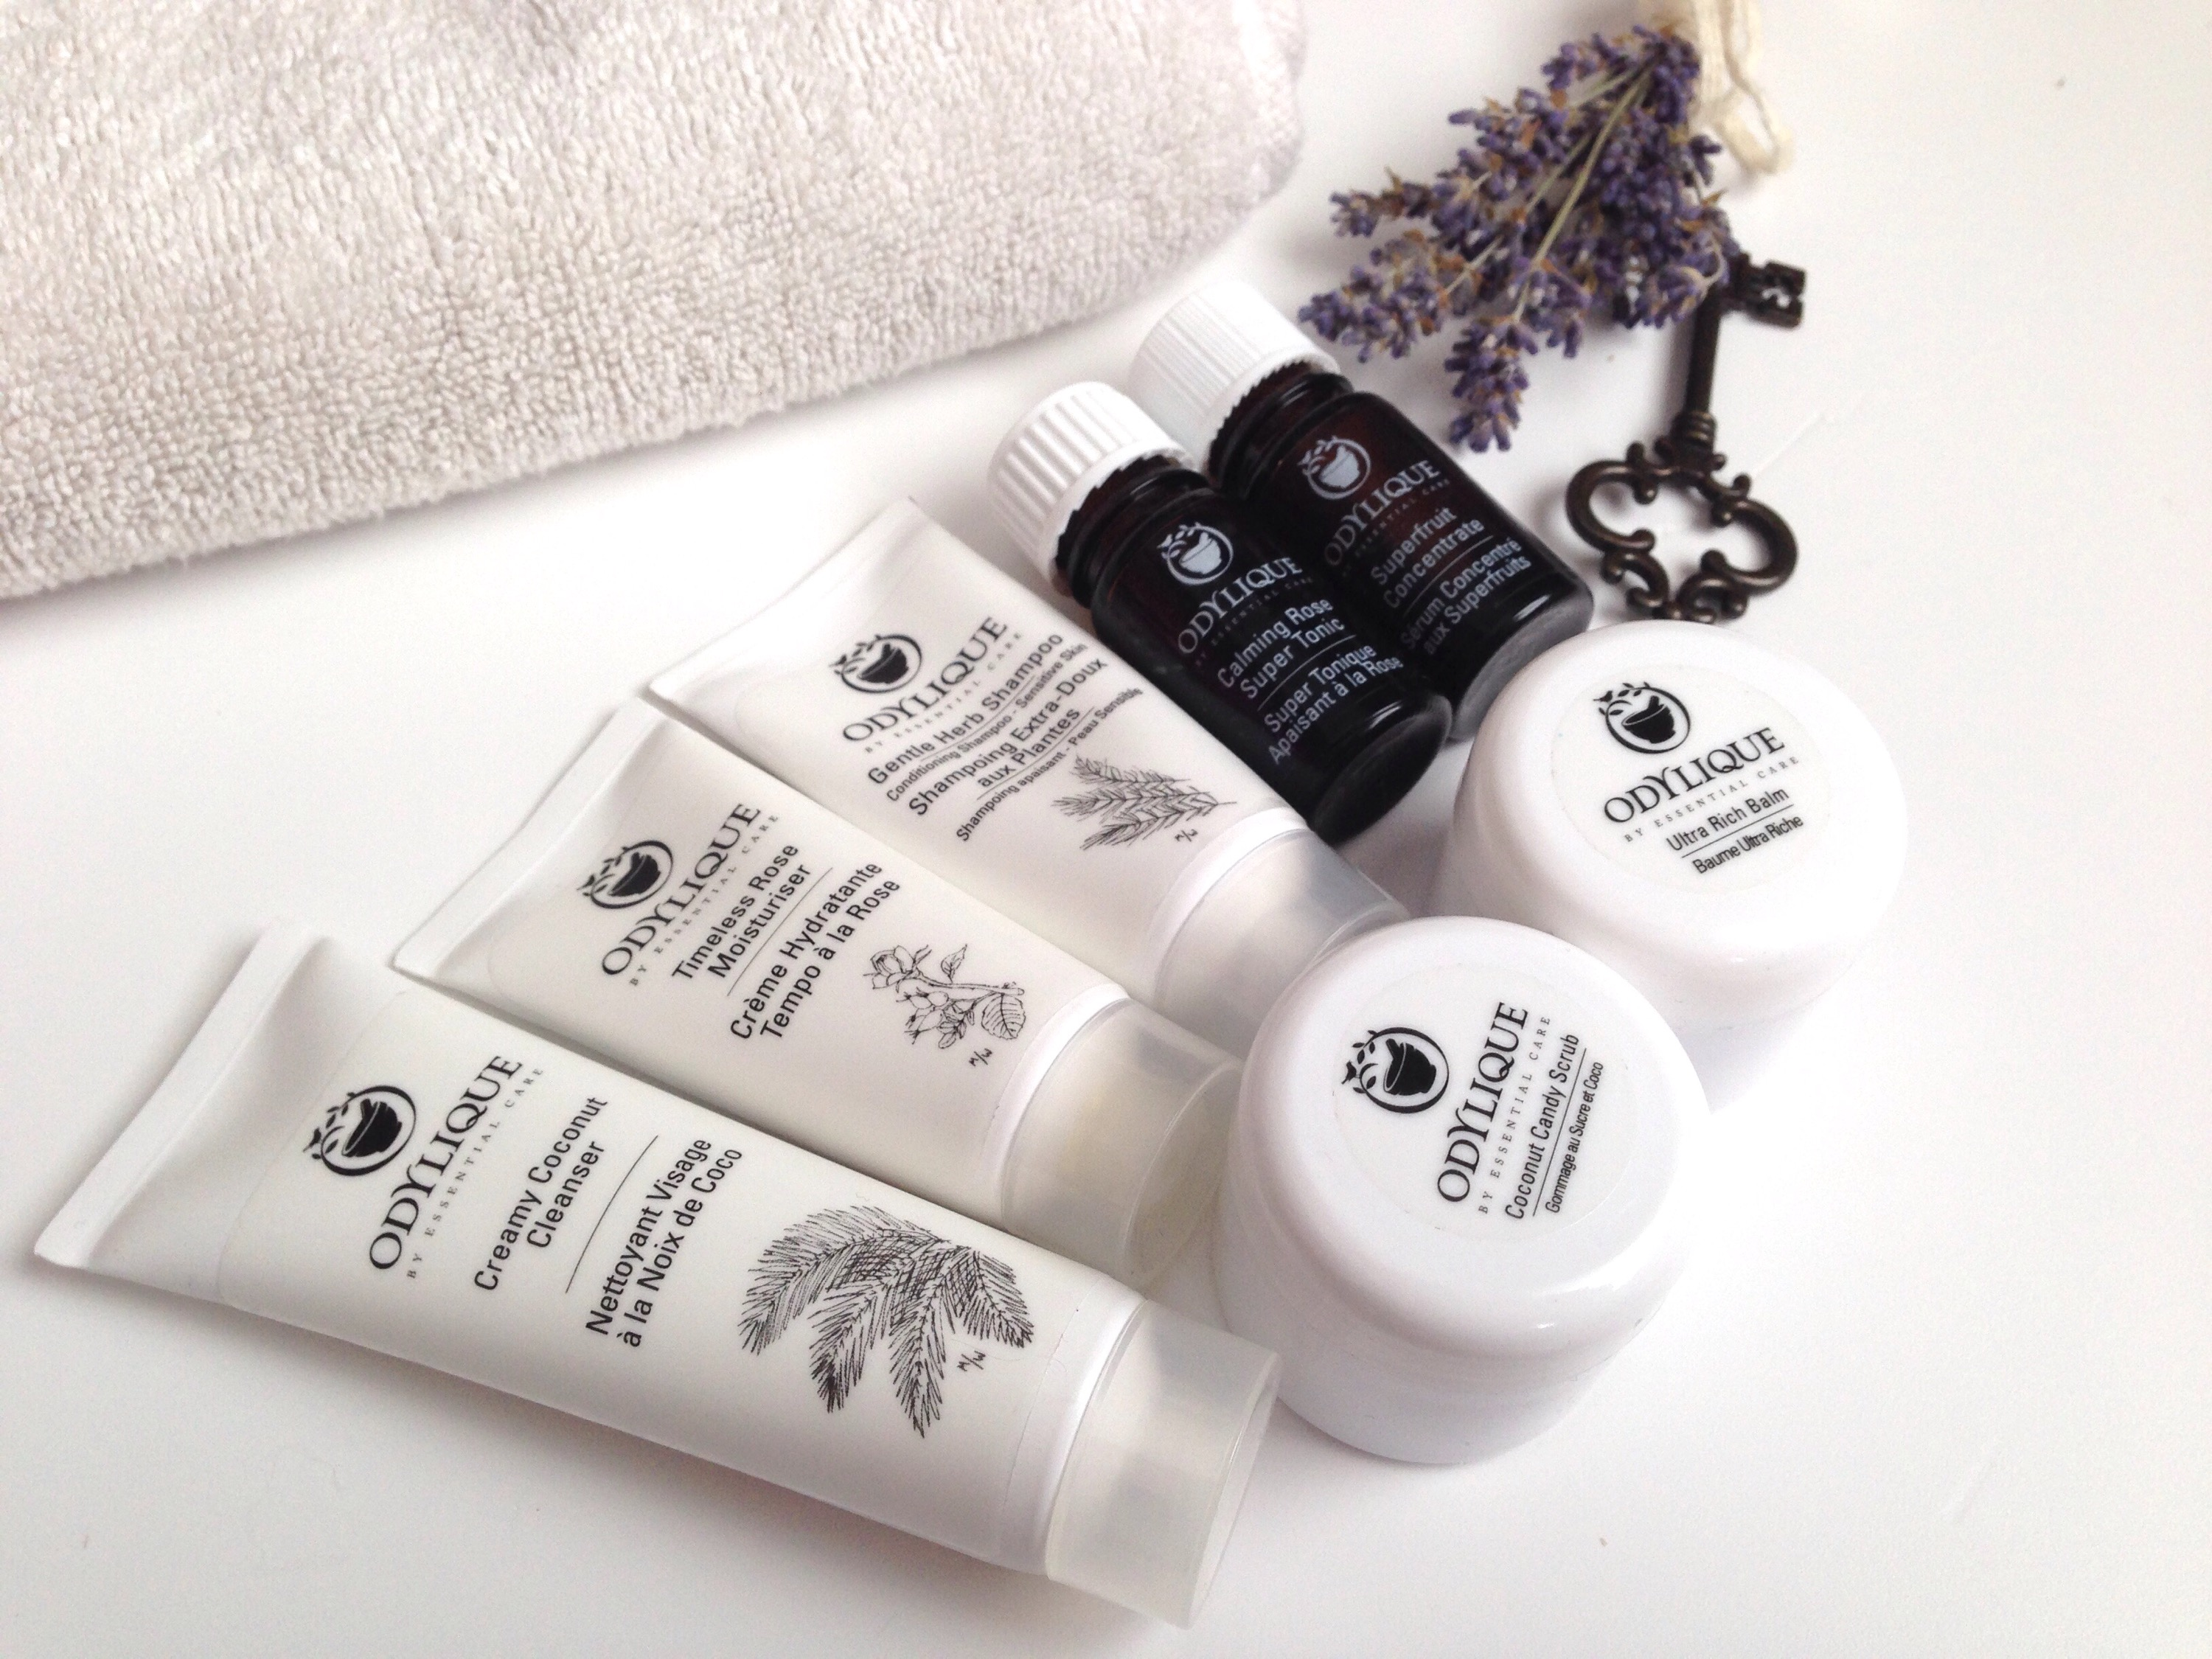 Pioneering natural care for sensitive skin since 1984 odylique